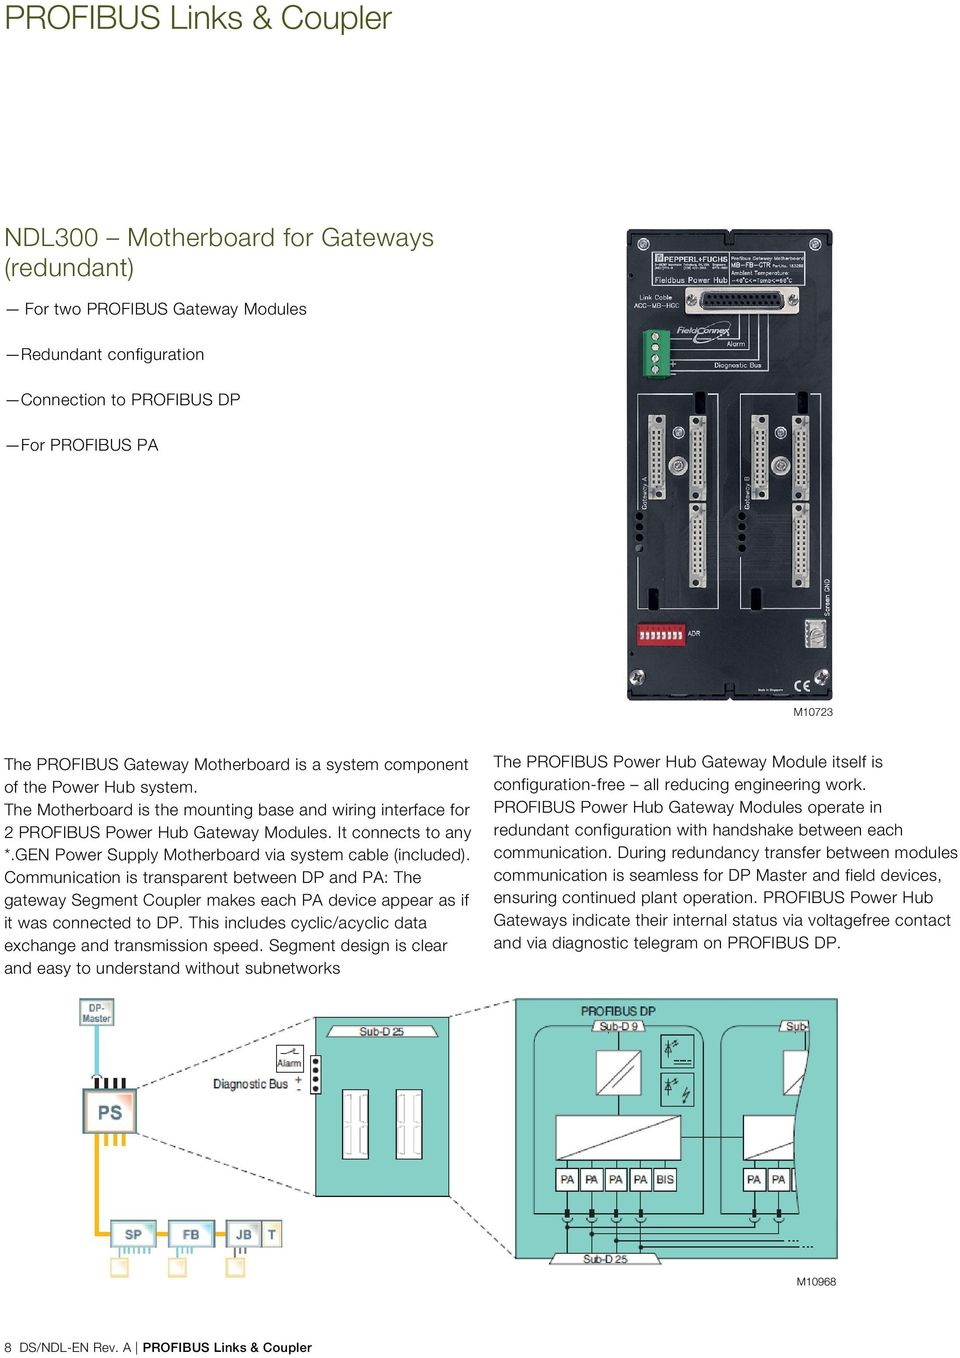 The Motherboard is the mounting base and wiring interface for 2 PROFIBUS Power Hub Gateway Modules. It connects to any *.GEN Power Supply Motherboard via system cable (included).